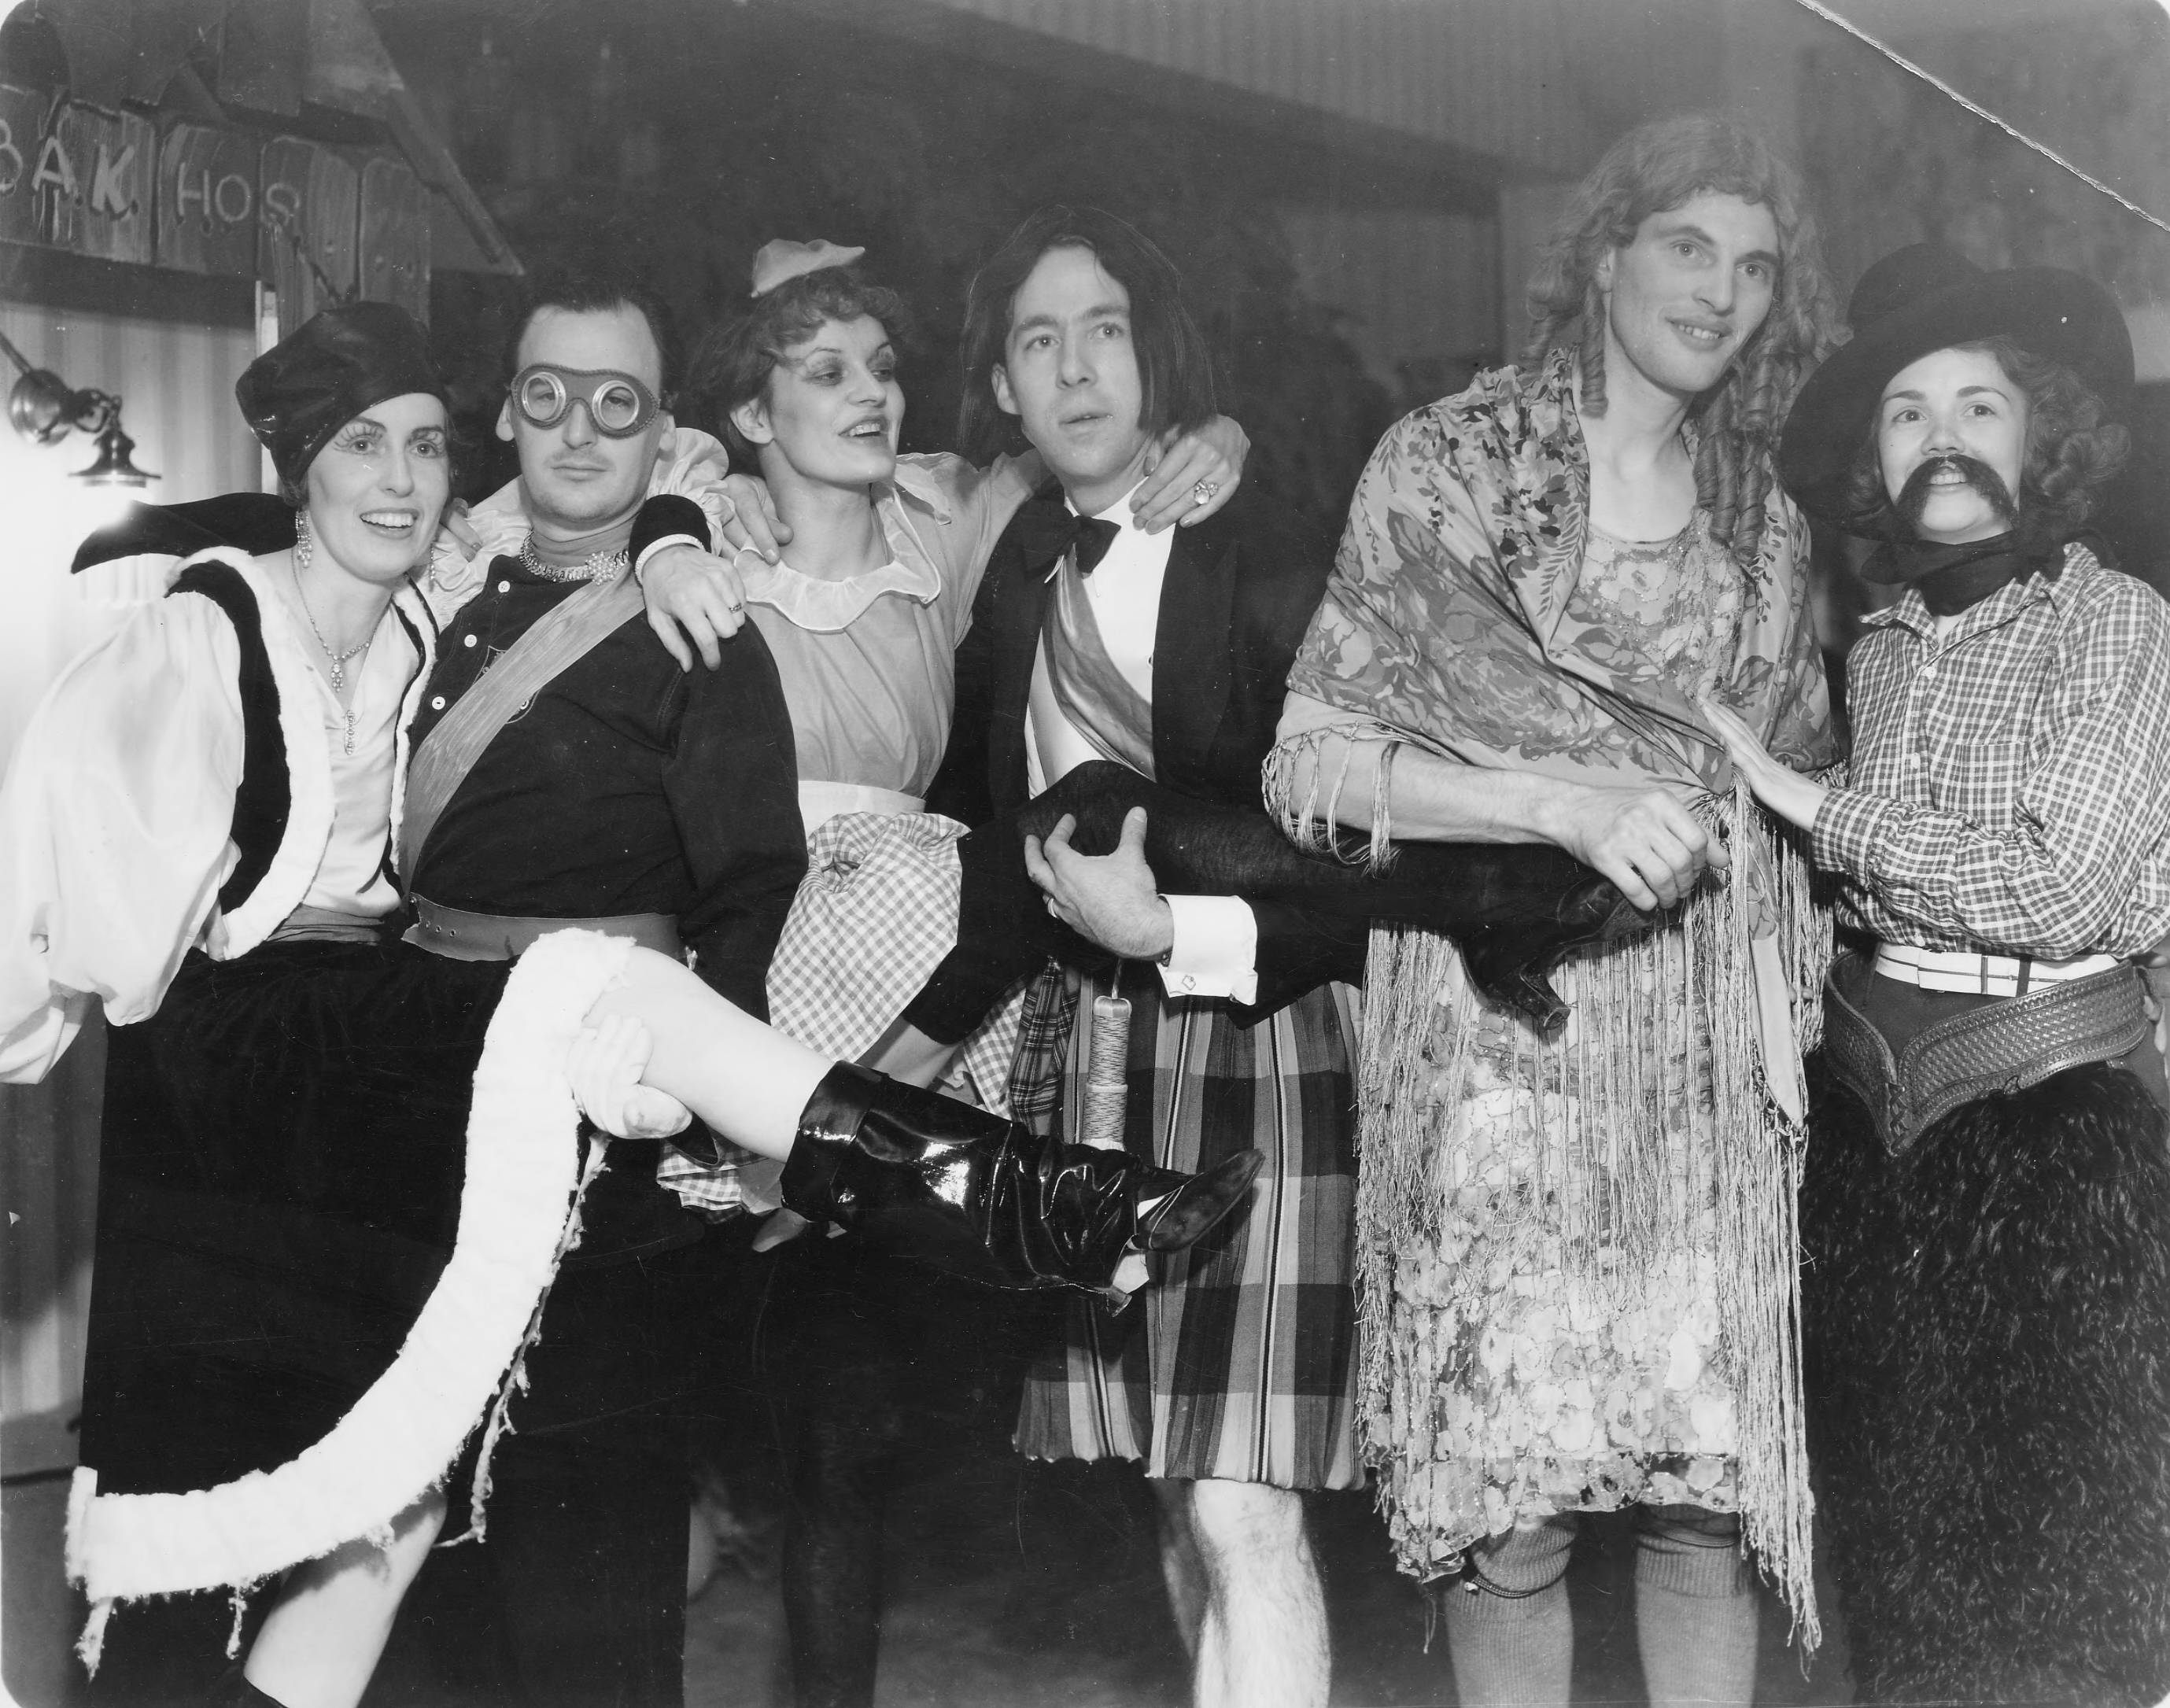 Members of the Tacoma Country and Golf Club reveled at a masquerade ball at the clubhouse on Halloween, 1934. In the center in kilts with wig askew was future Mayor of Tacoma Harry P. Cain. To the far left was his wife, Marjorie Cain, dressed as a Russian cossack. Cain was holding the leg of an unidentified French maid, as an unidentified aviator held that of his wife in this interesting picture. The unidentified cross dressing couple to the right smiled merrily at the camera.